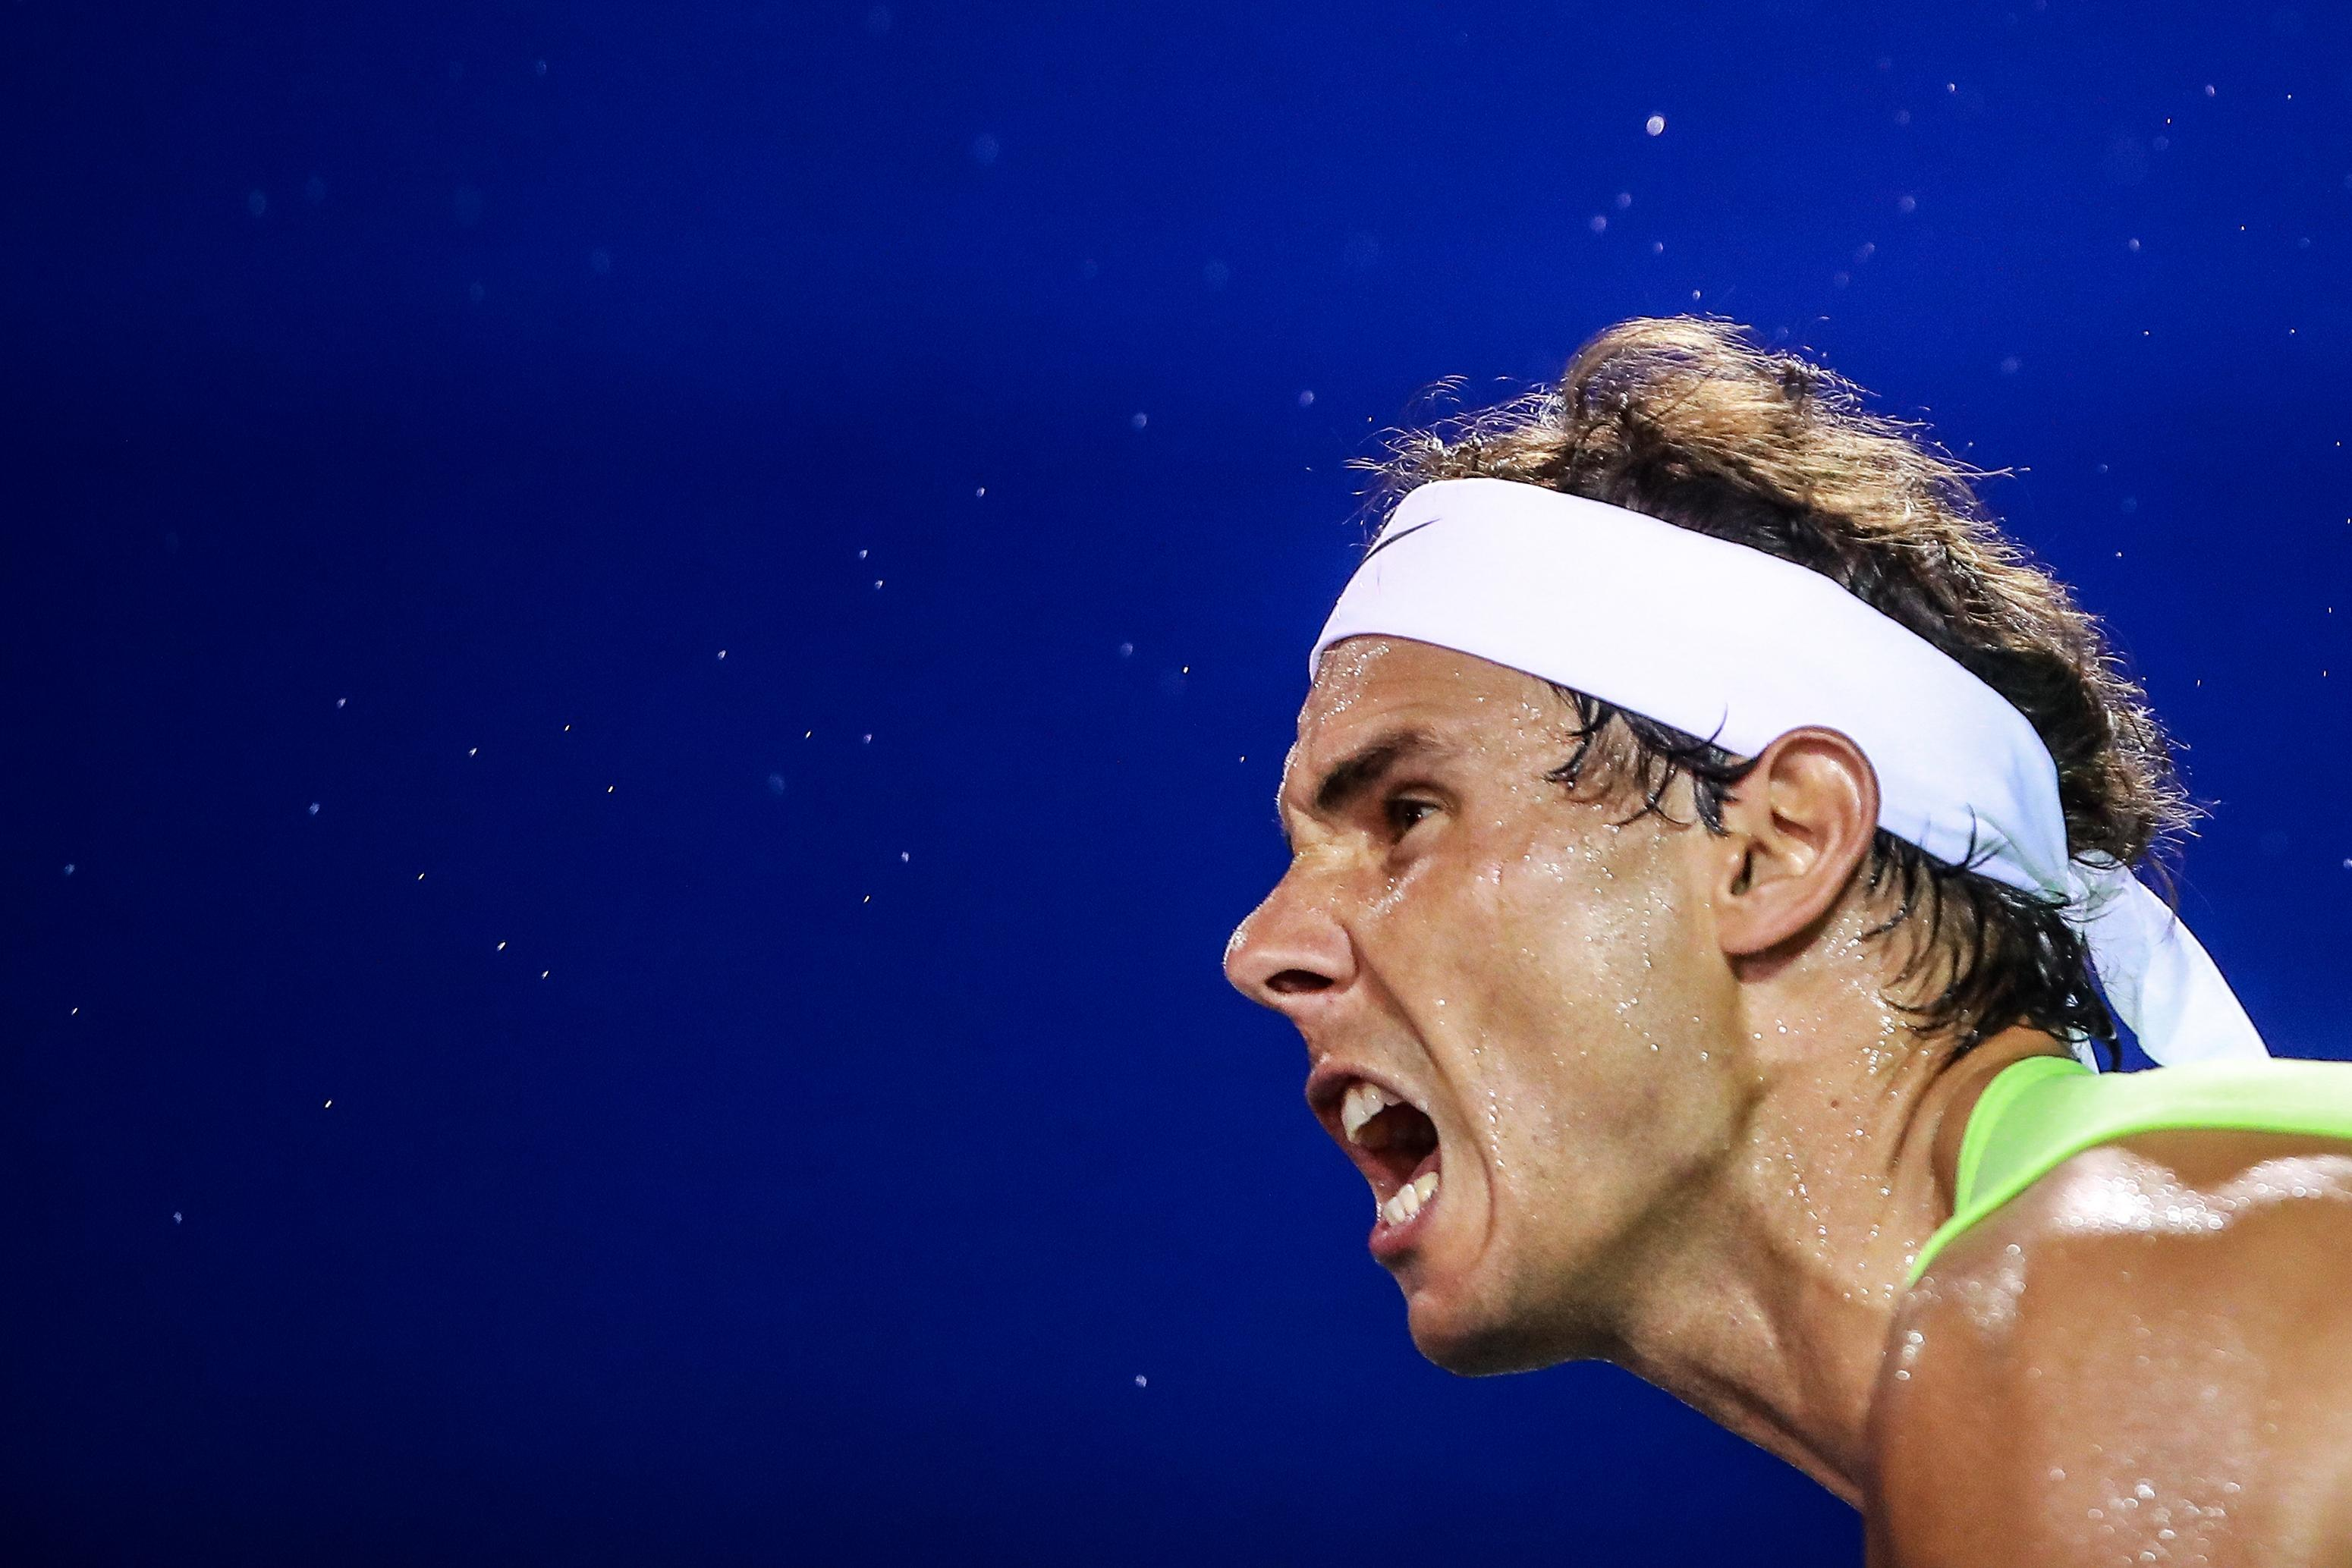 Rafa Nadal has been in pain since 2005 and trying to tackle his aches with painkillers